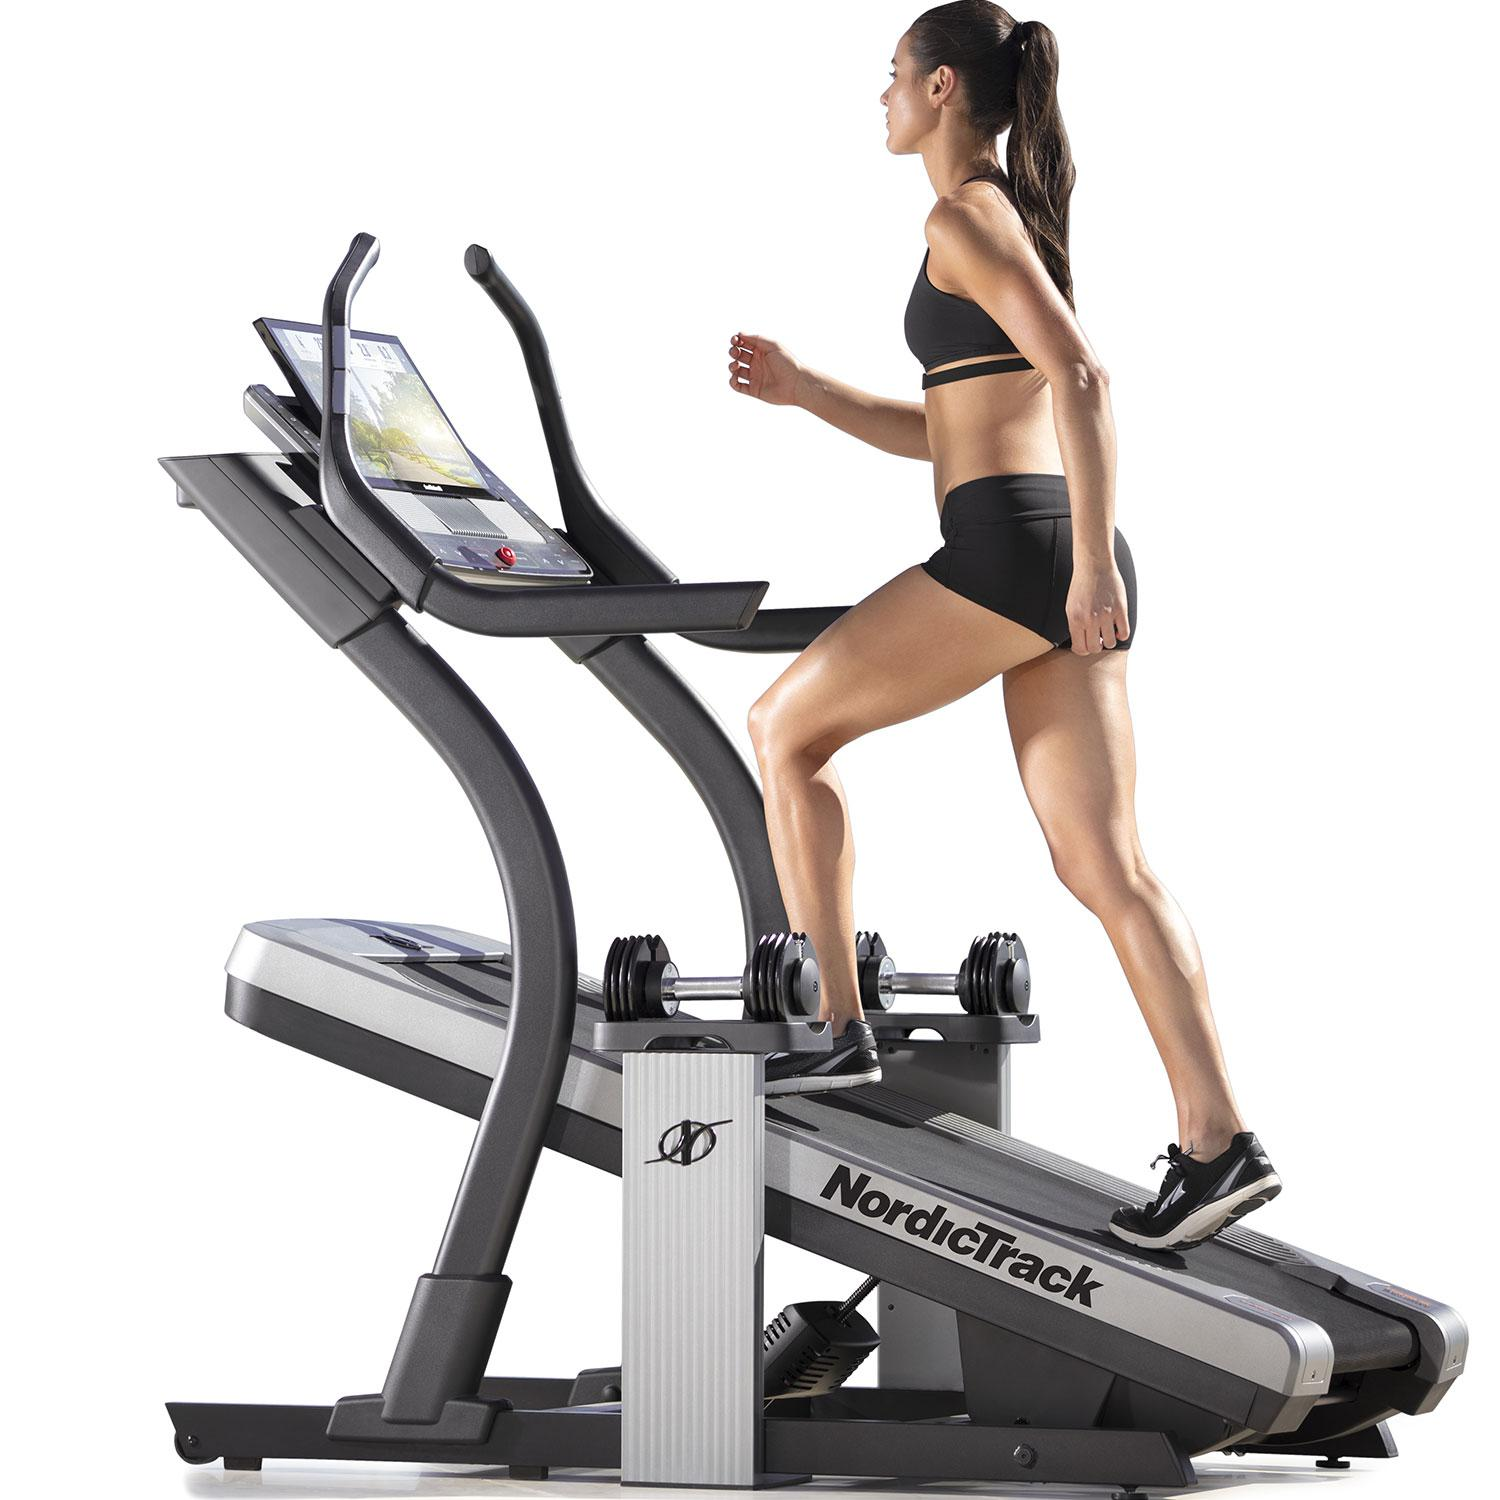 Беговая дорожка NordicTrack Incline Trainer X22i, фото №6